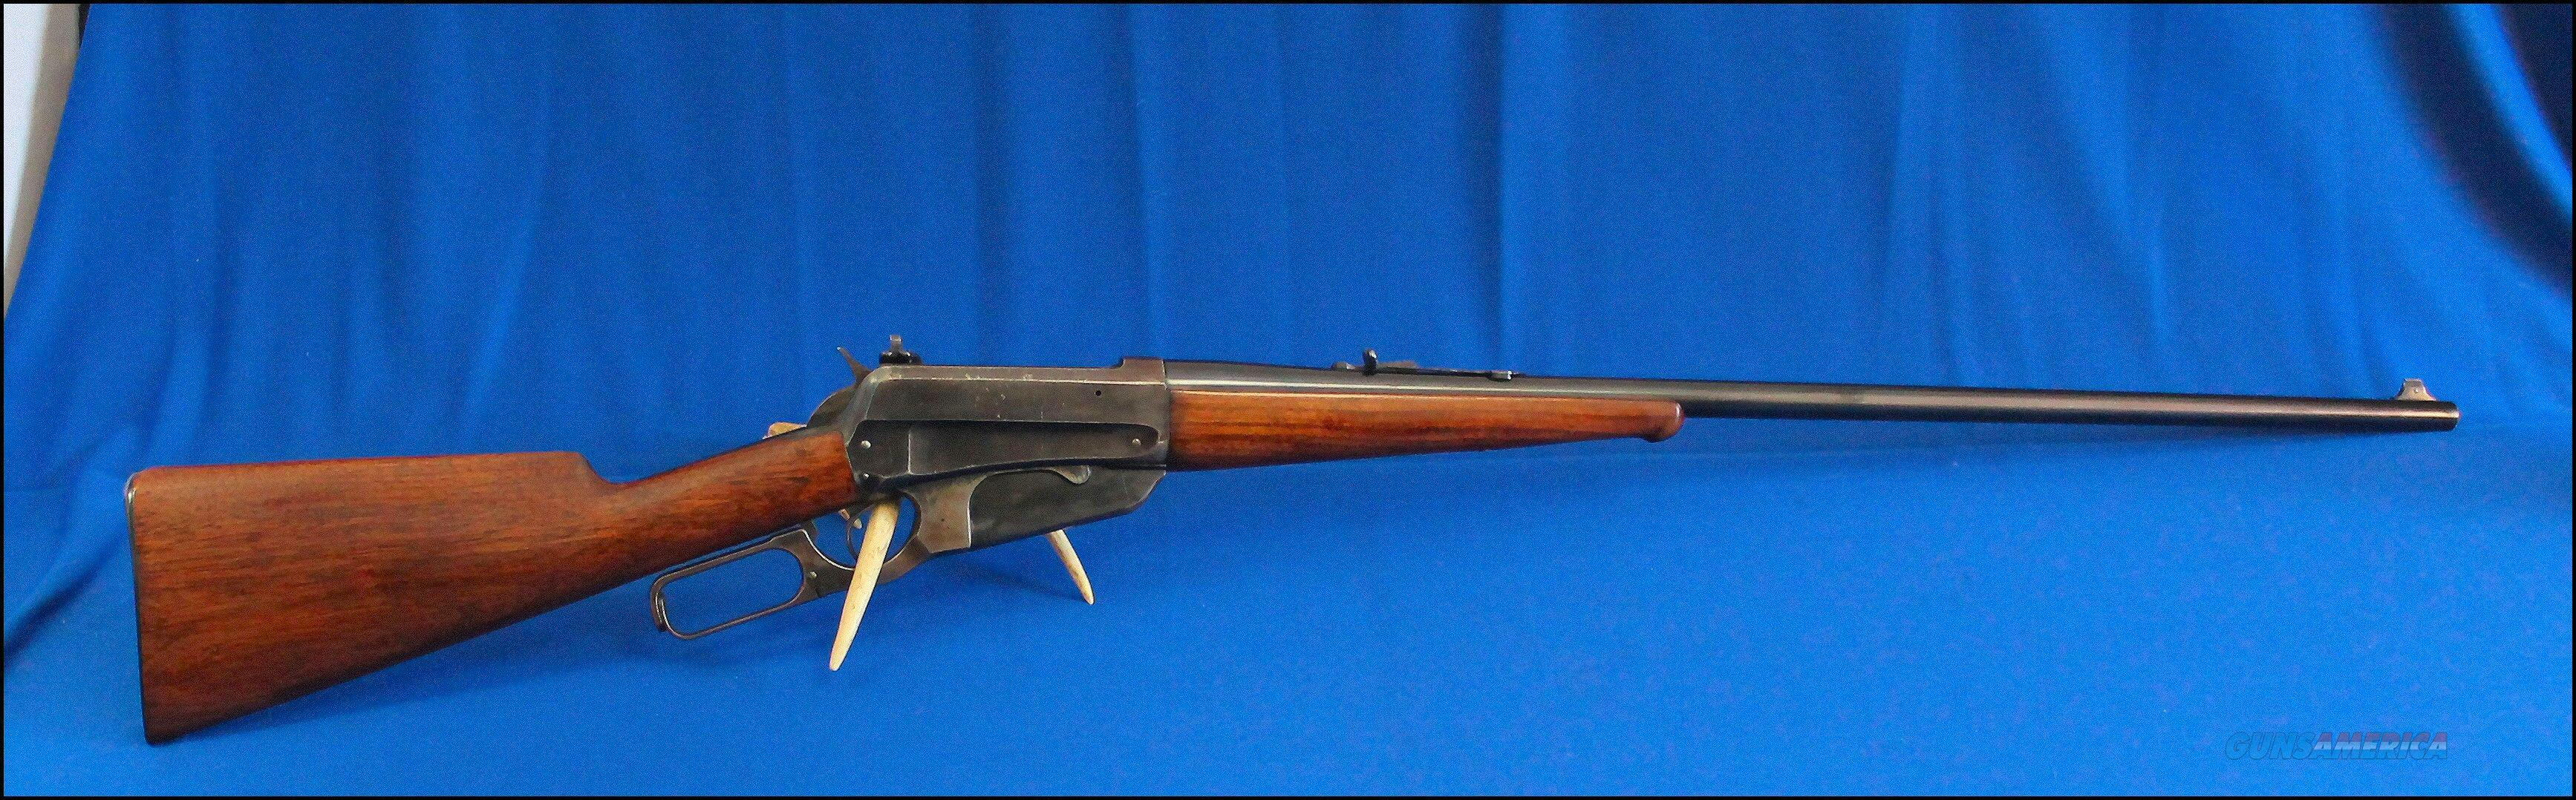 Winchester 1895 Sporting Rifle 30 U.S. - Lyman 21 - 30-40 Krag -Mfg 1902   Guns > Rifles > Winchester Rifles - Modern Lever > Other Lever > Pre-64